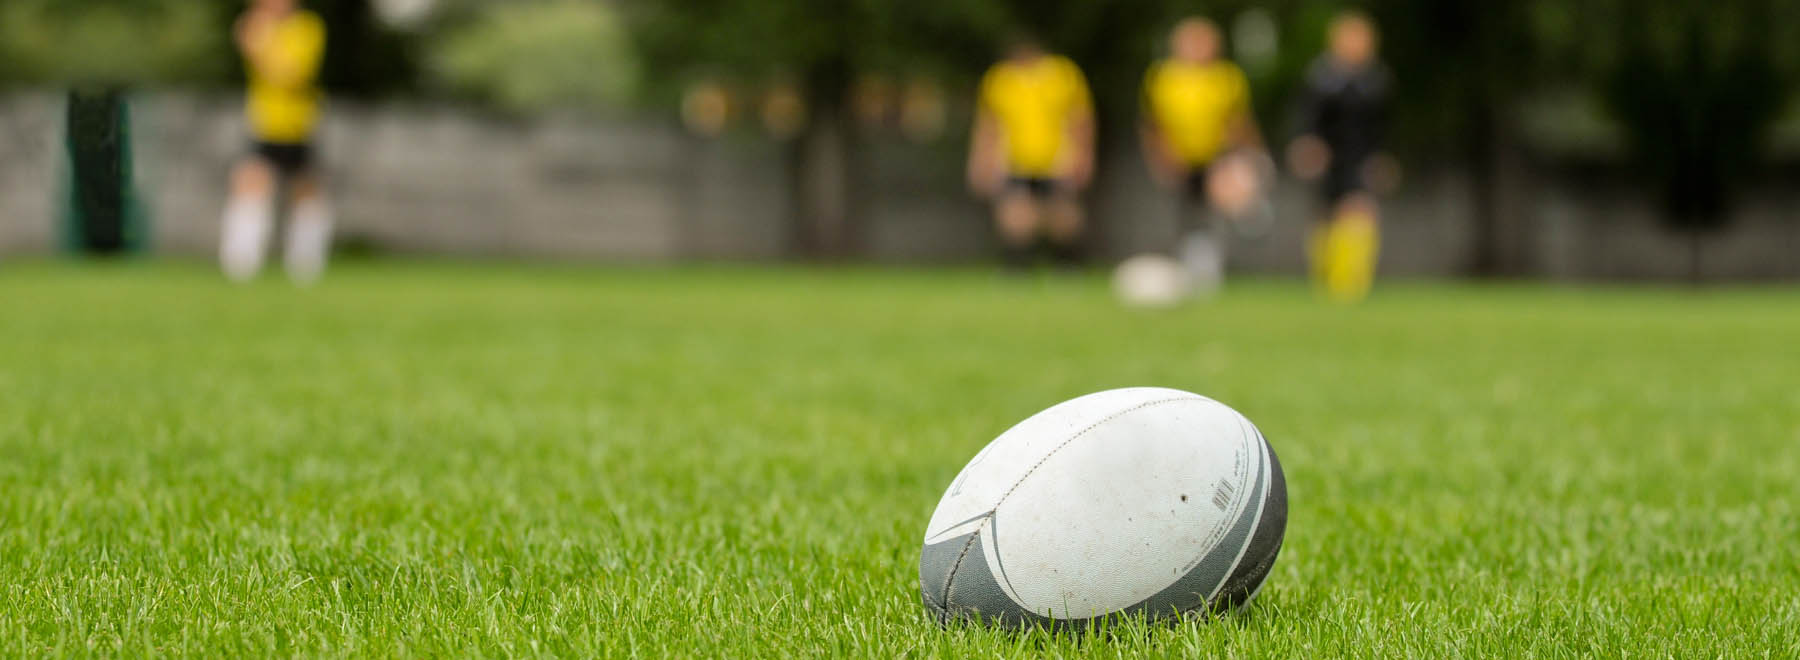 University students playing rugby